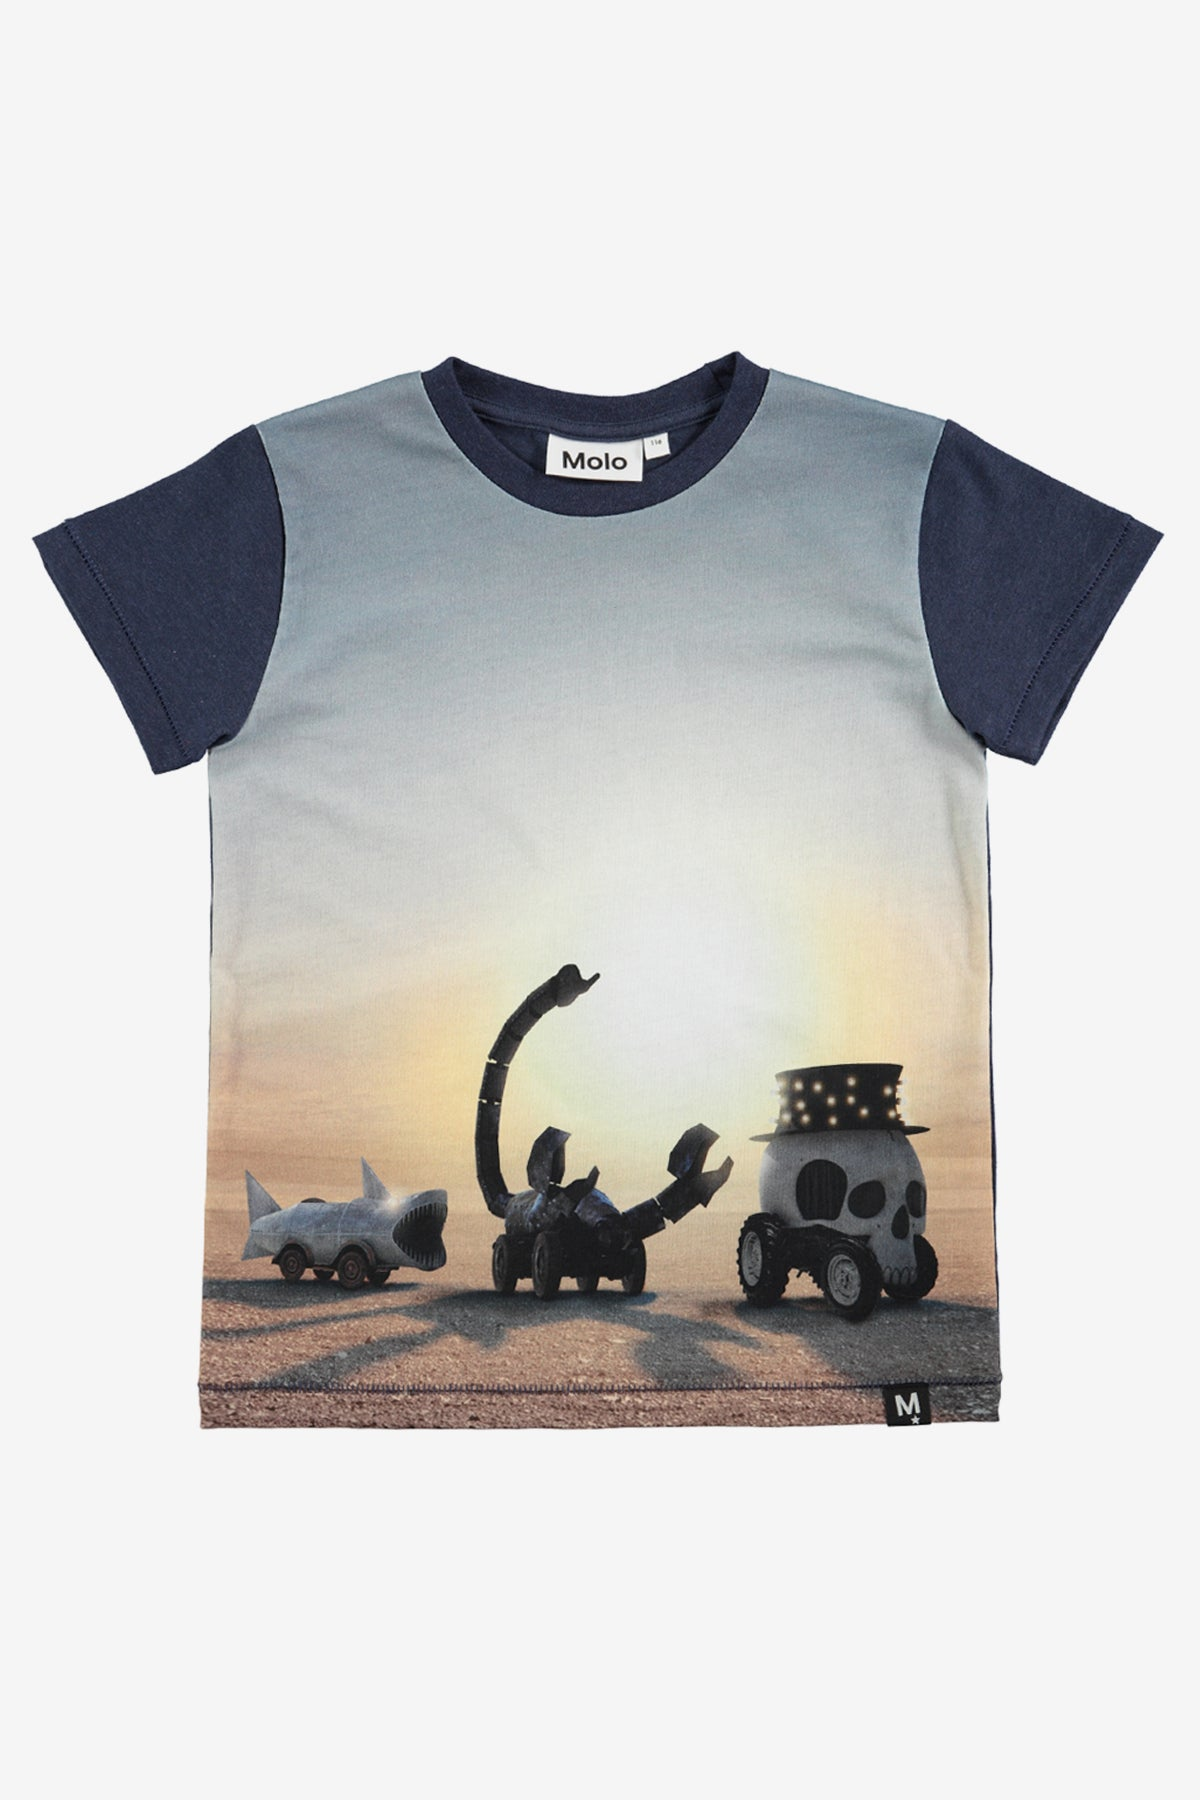 803506d5be Molo Ragnij Black Rock Desert T-Shirt